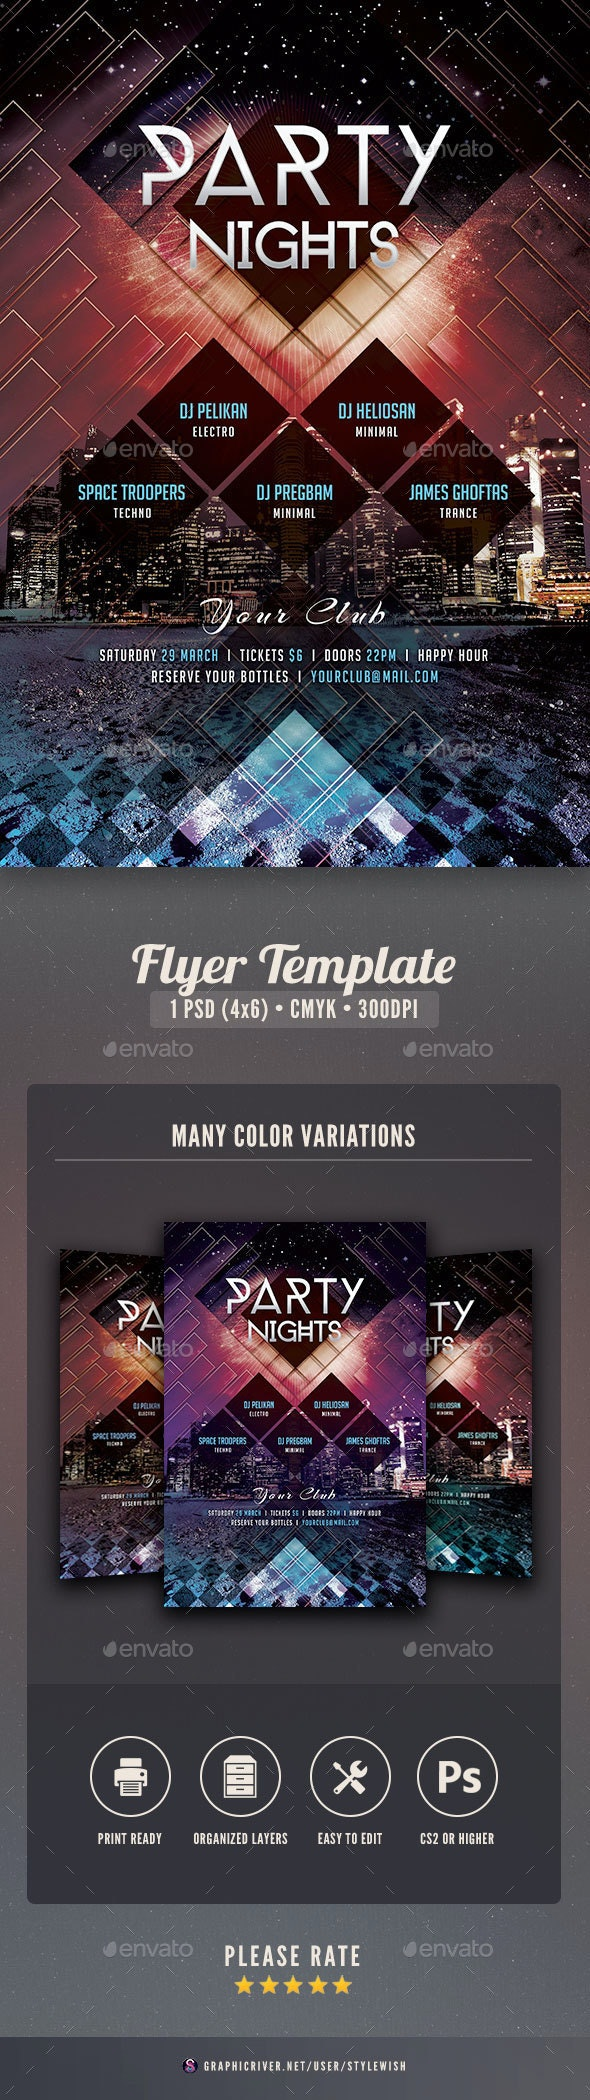 Party Nights Flyer - Clubs & Parties Events